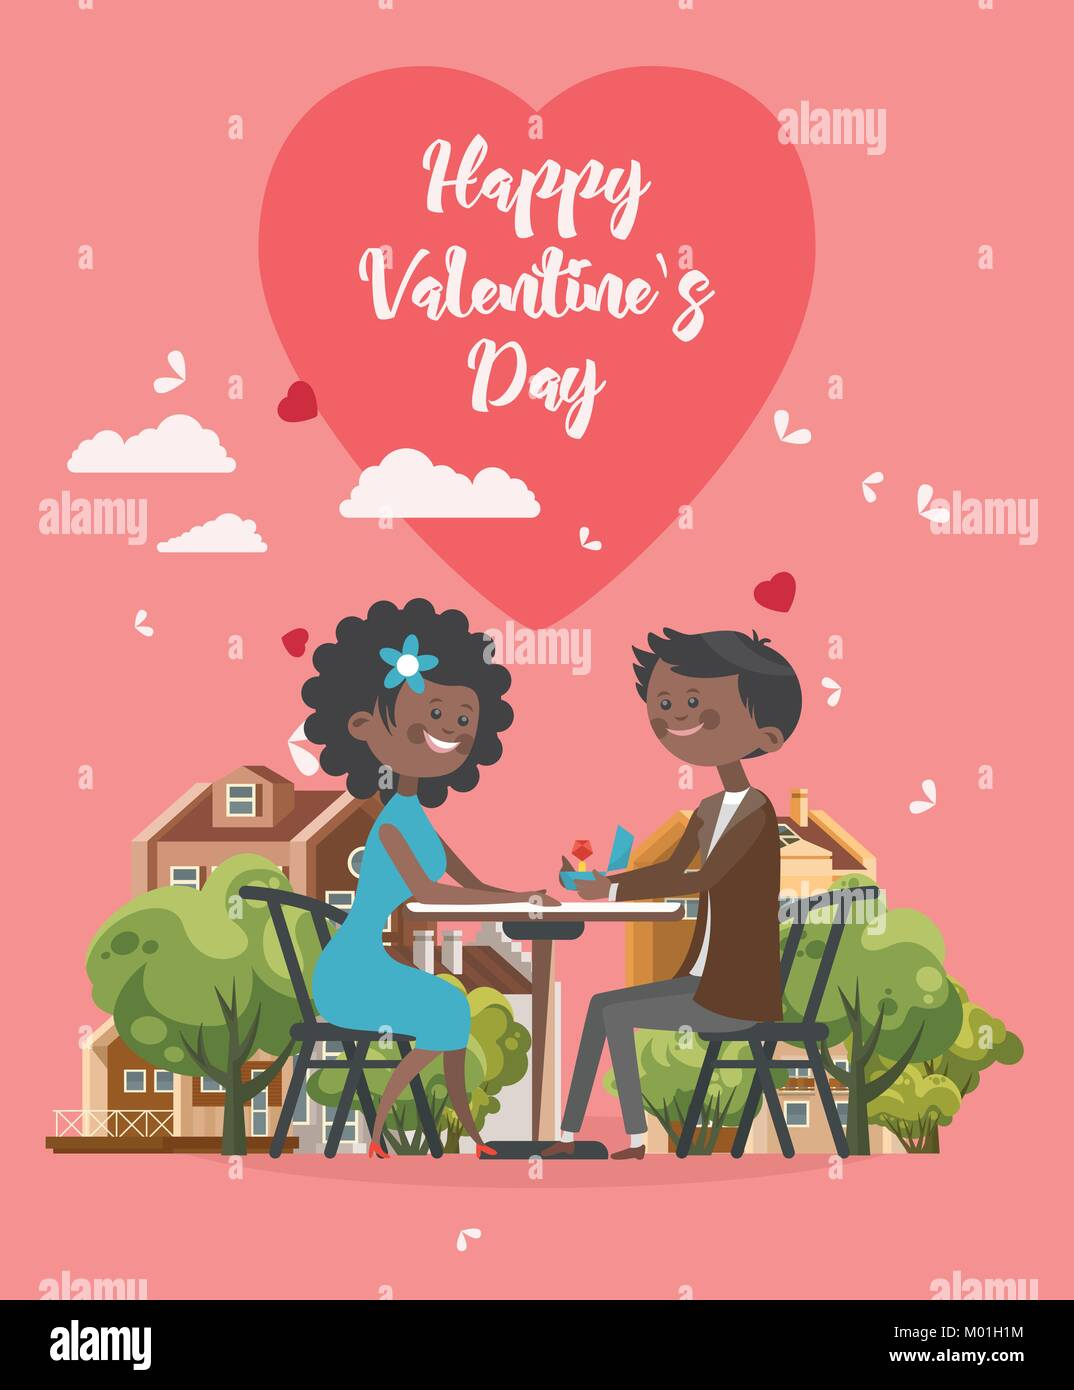 Happy Valentines Day Vector Illustration Greeting Card With Young